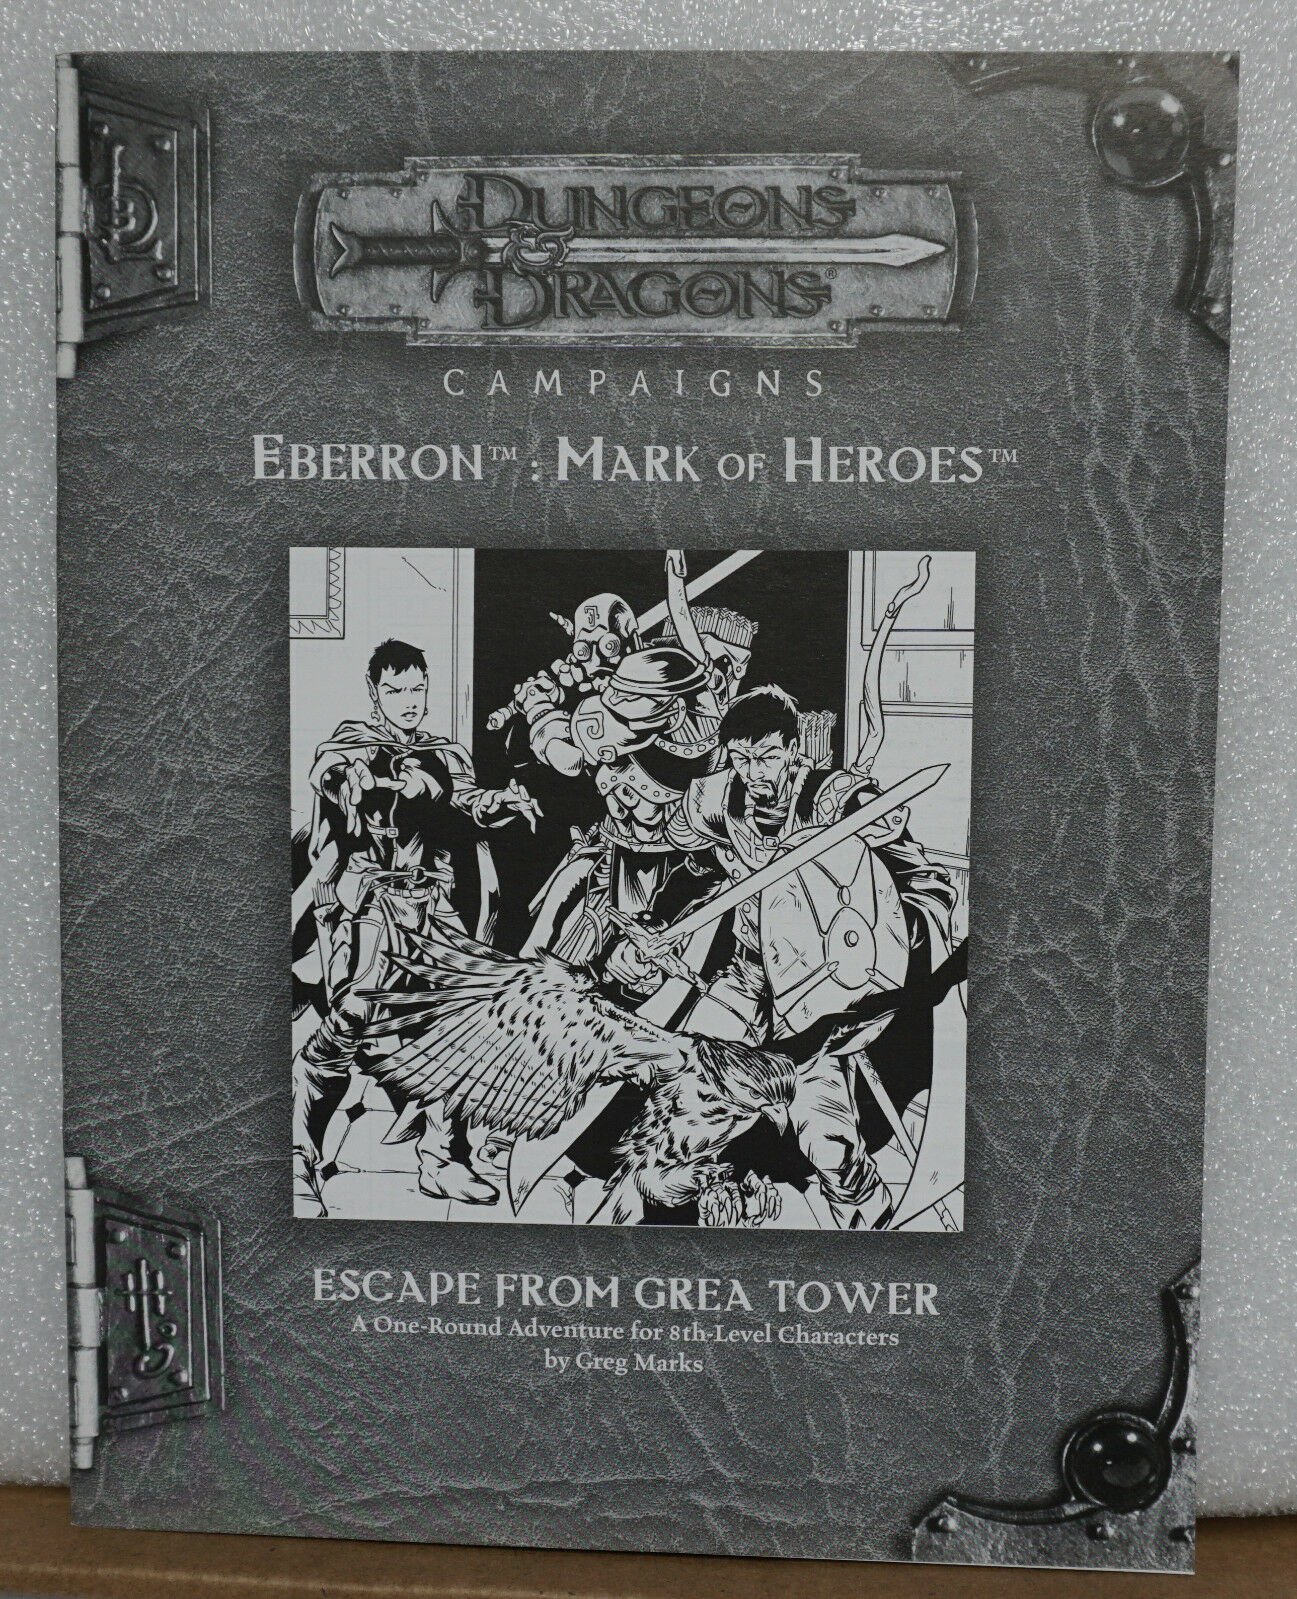 Dungeons & Dragons Campaigns Eberron Mark of Heroes Escaape from Grea Tower